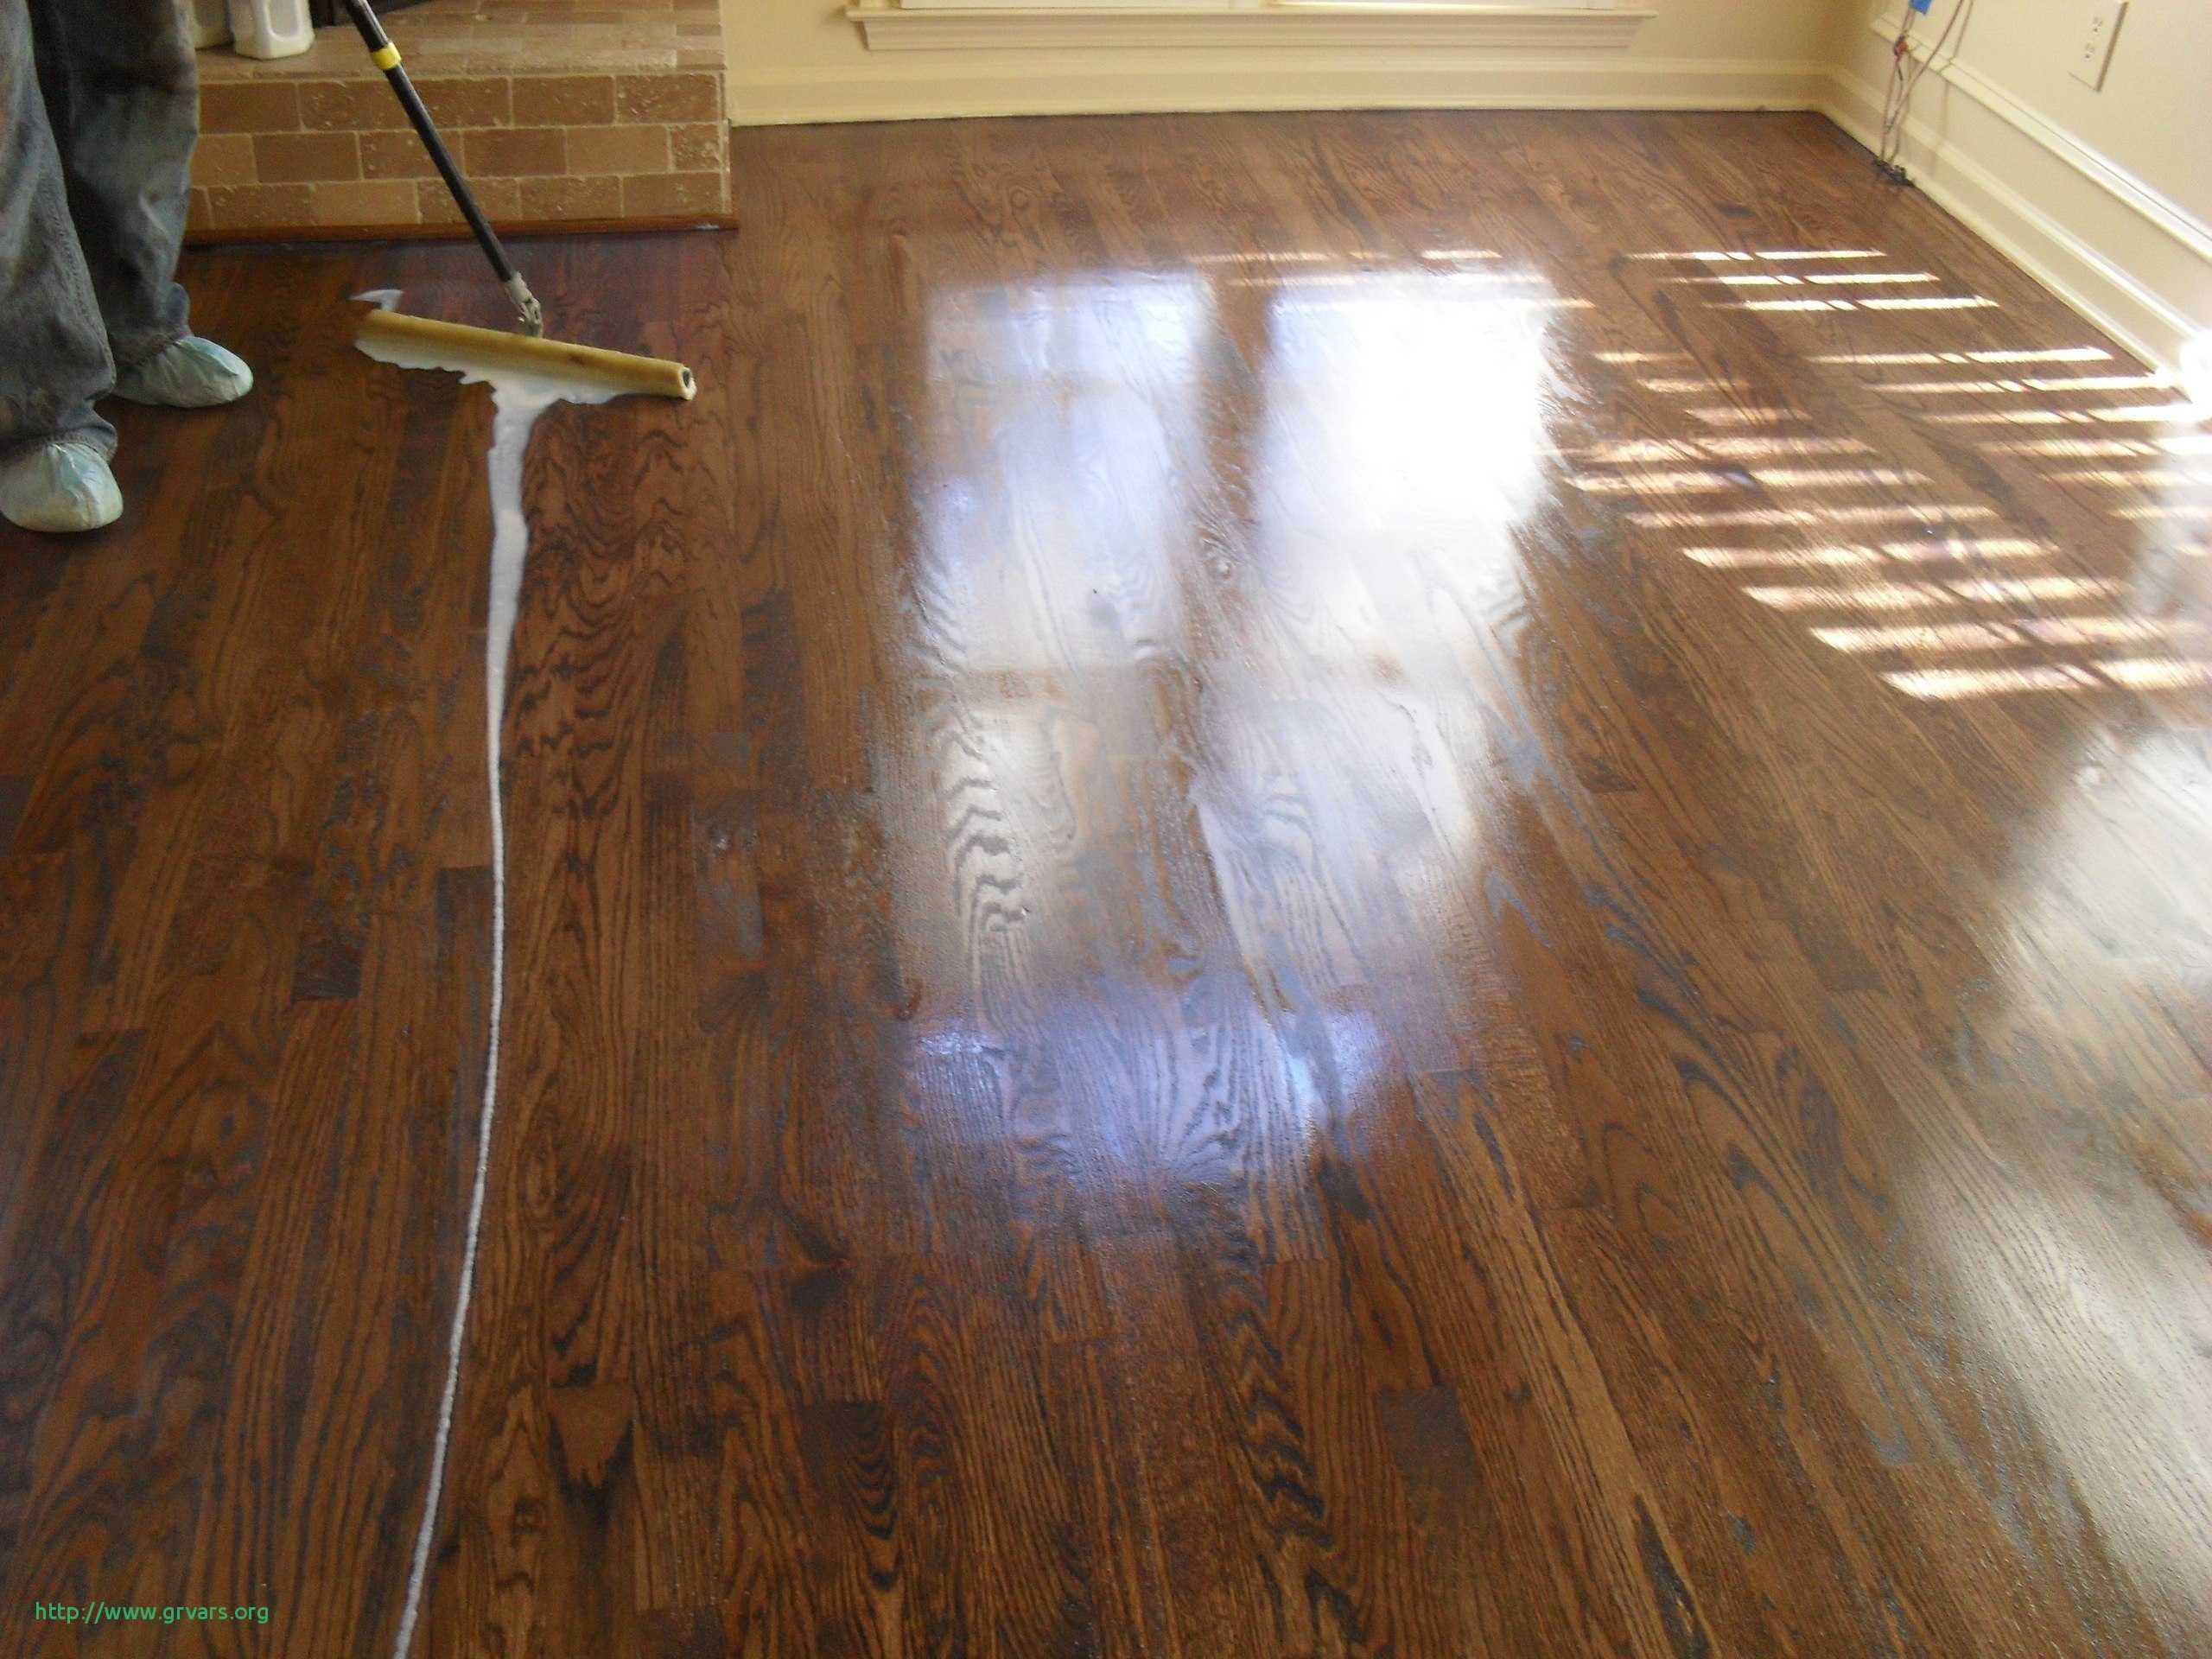 caring for engineered hardwood floors of image number 6563 from post restoring old hardwood floors will regarding nouveau hardwood floors yourself ideas restoring old will inspirant redo without sanding podemosleganes lovely refinishingod pet